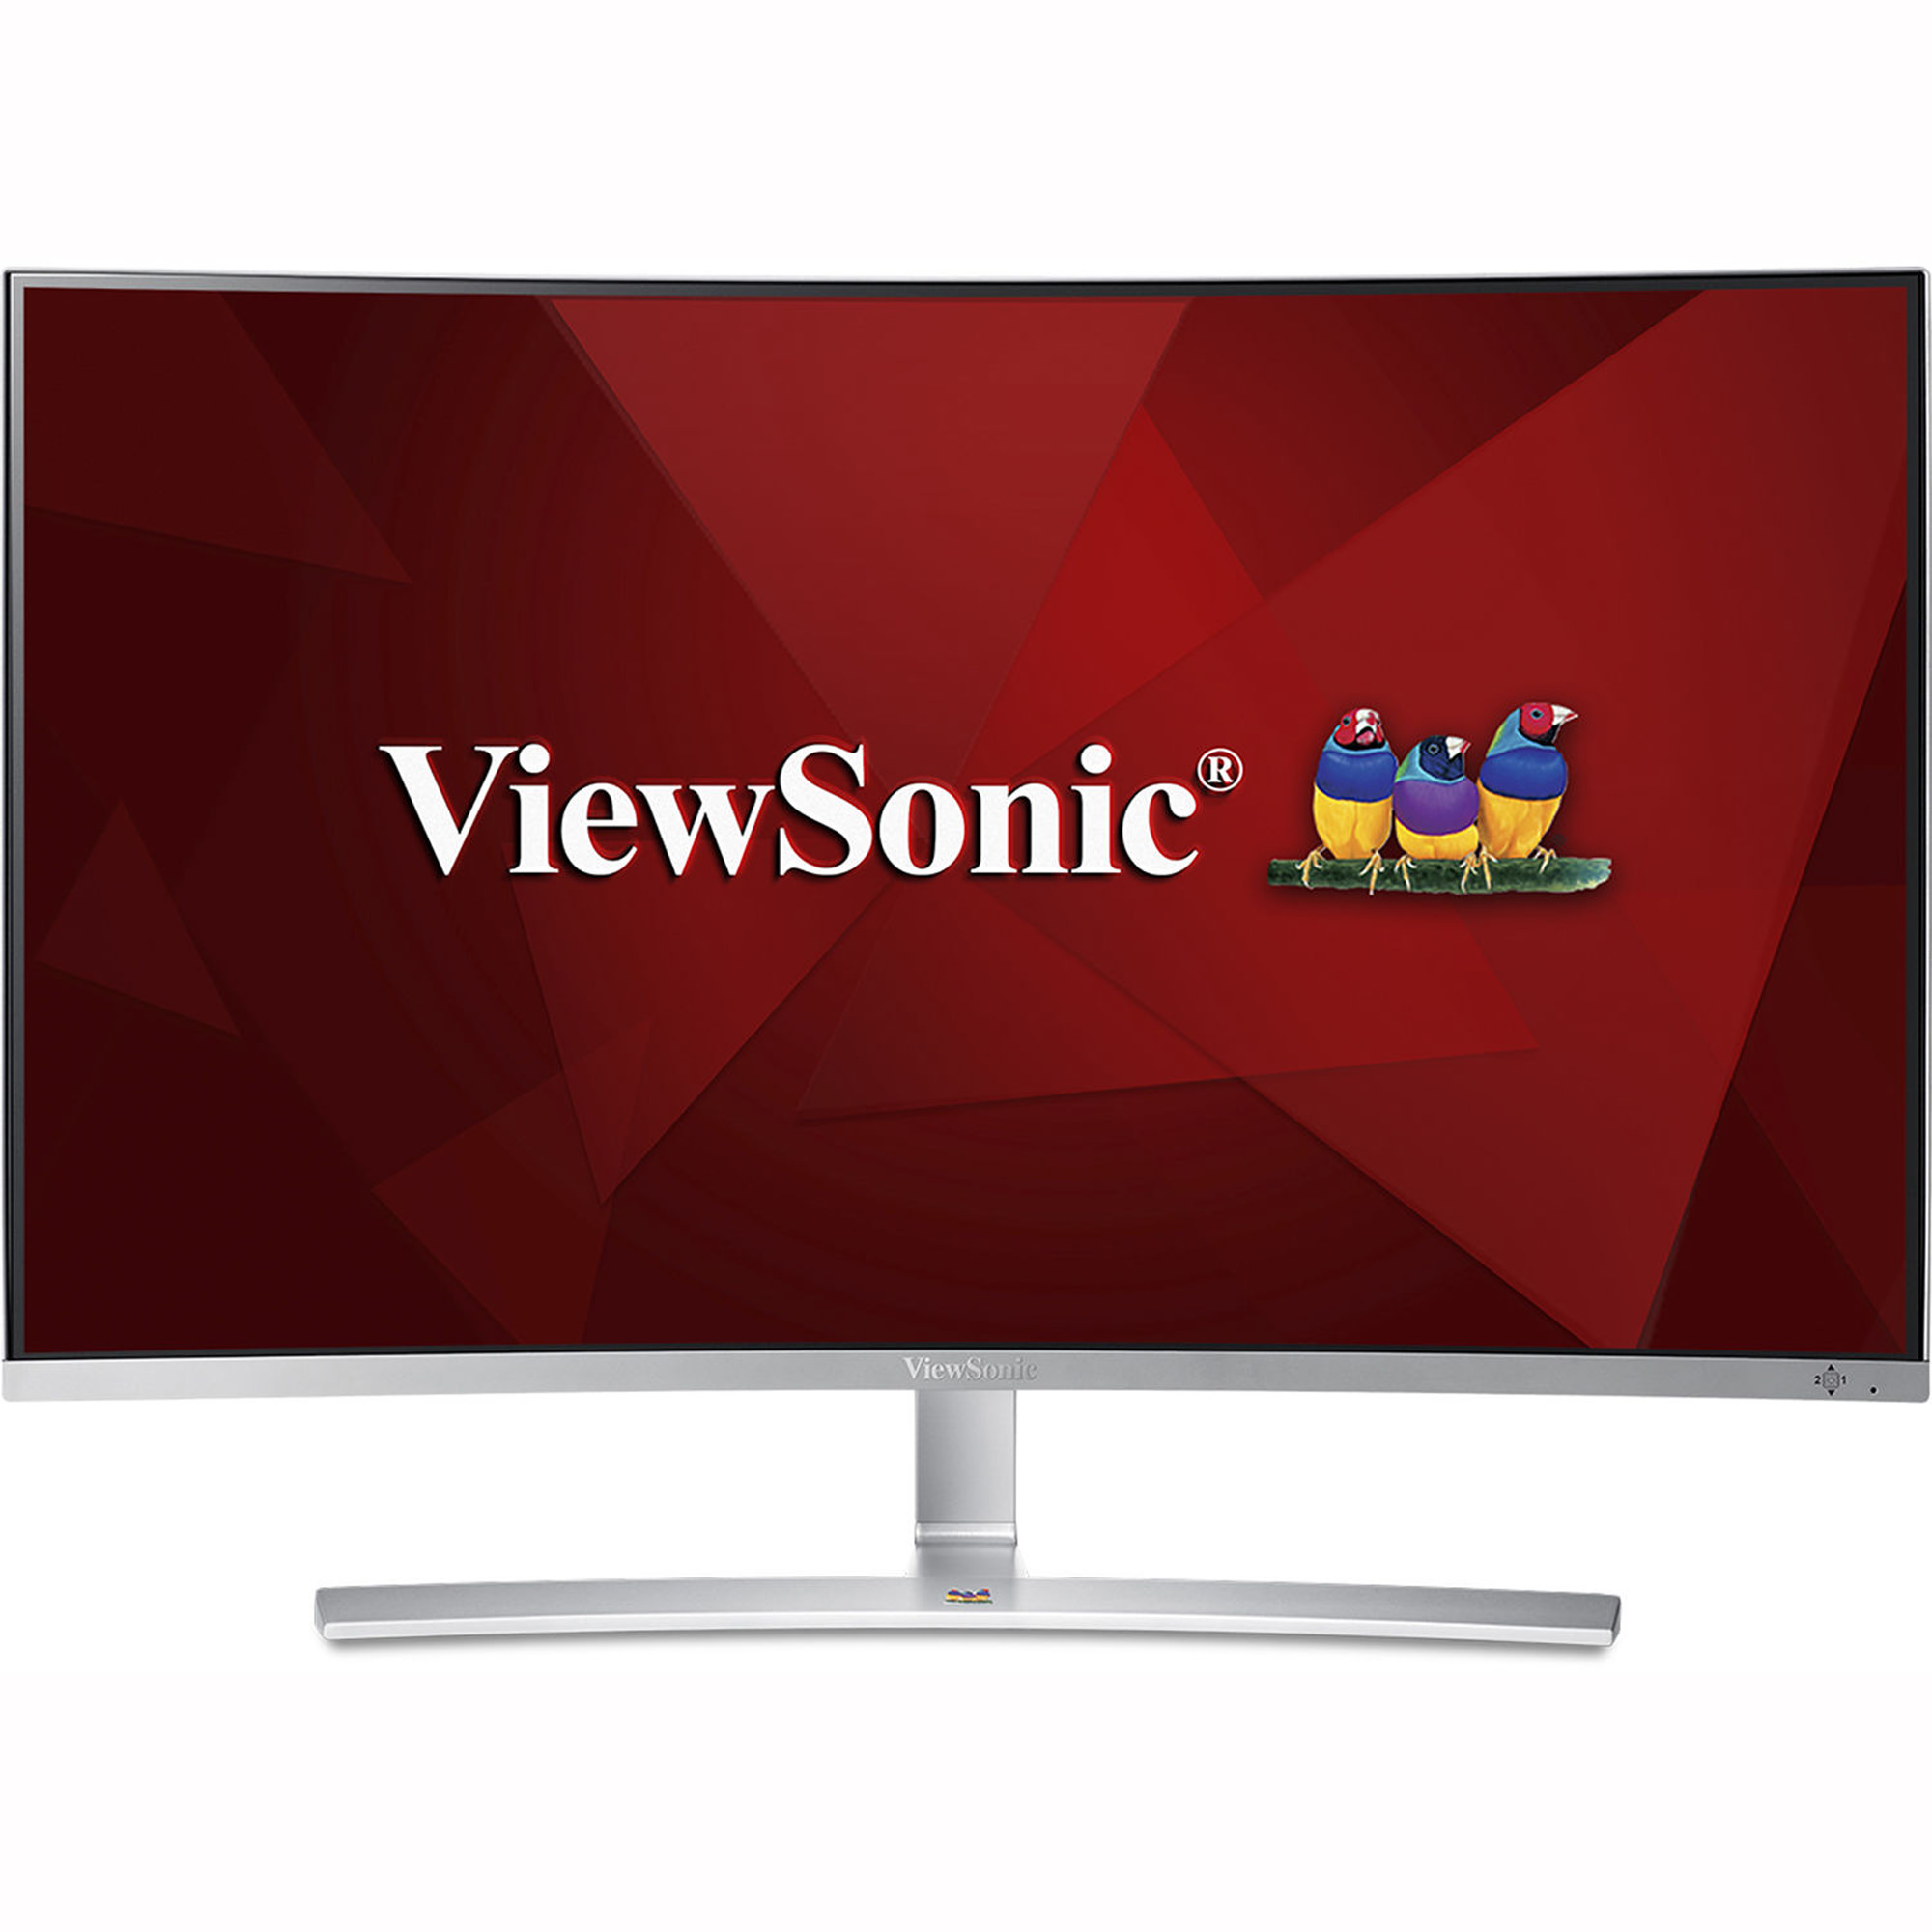 ViewSonic VX3216-SCMH-W 32 Inch 1080p 1800R Curved Monitor with Dual Speakers HDMI DVI and VGA